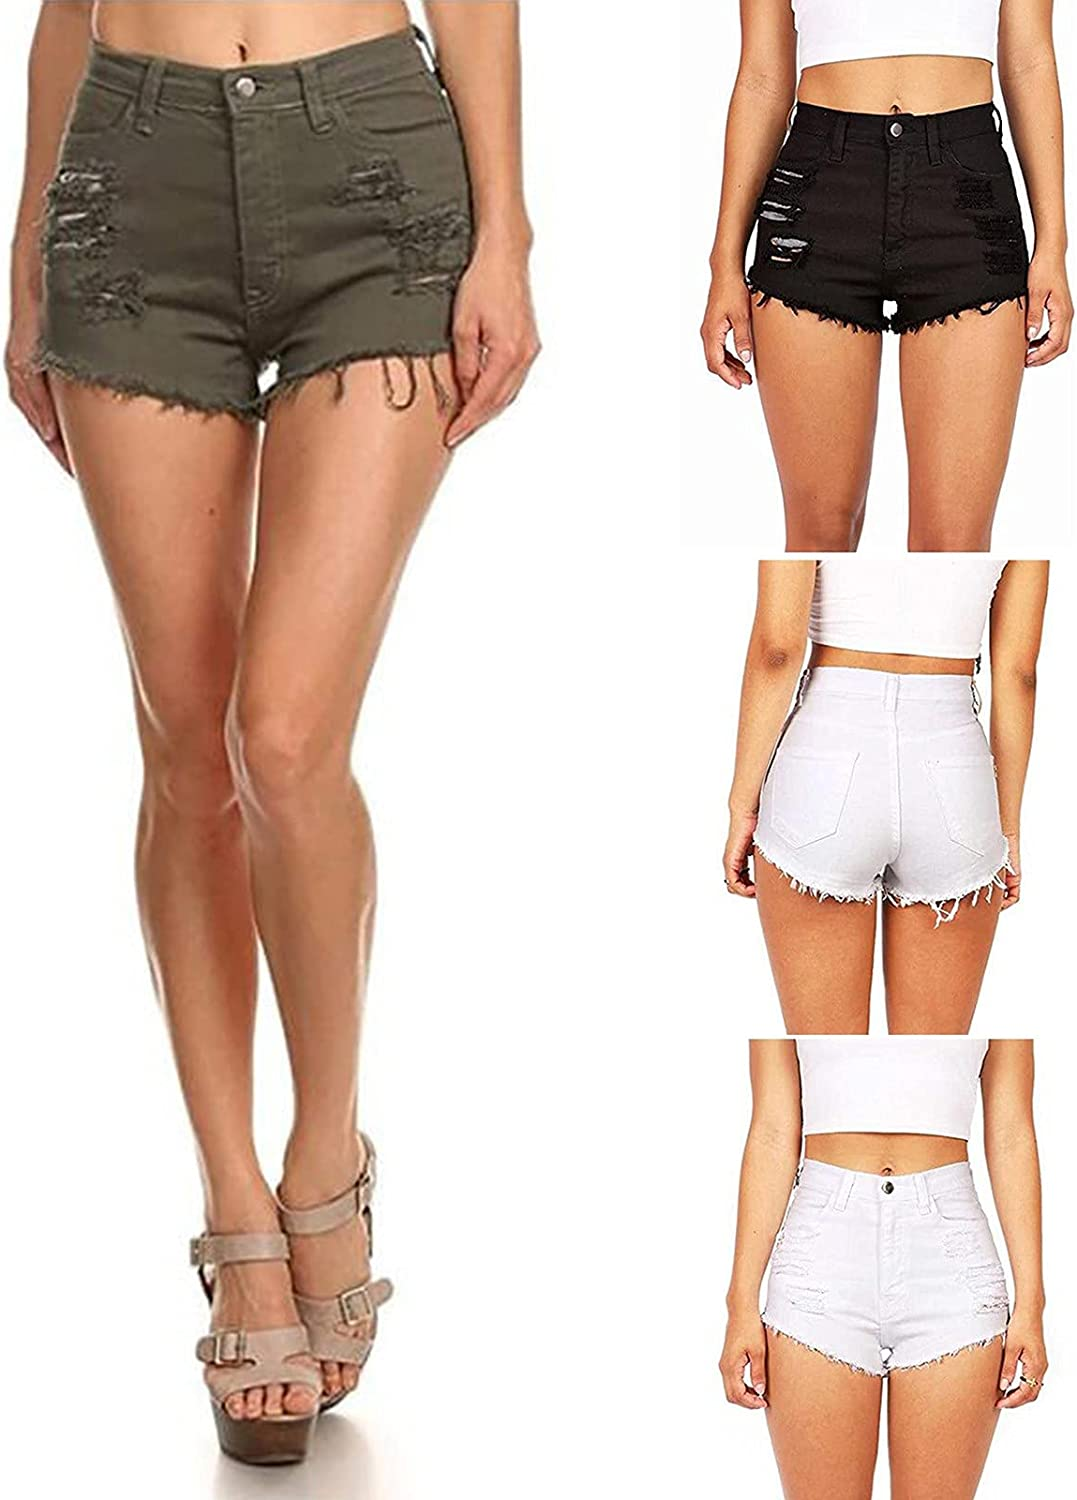 ZGNB Jeans Shorts for Women Women's Casual Fashion Insert Pockets Sexy Personality Ultra-Short Denim Shorts